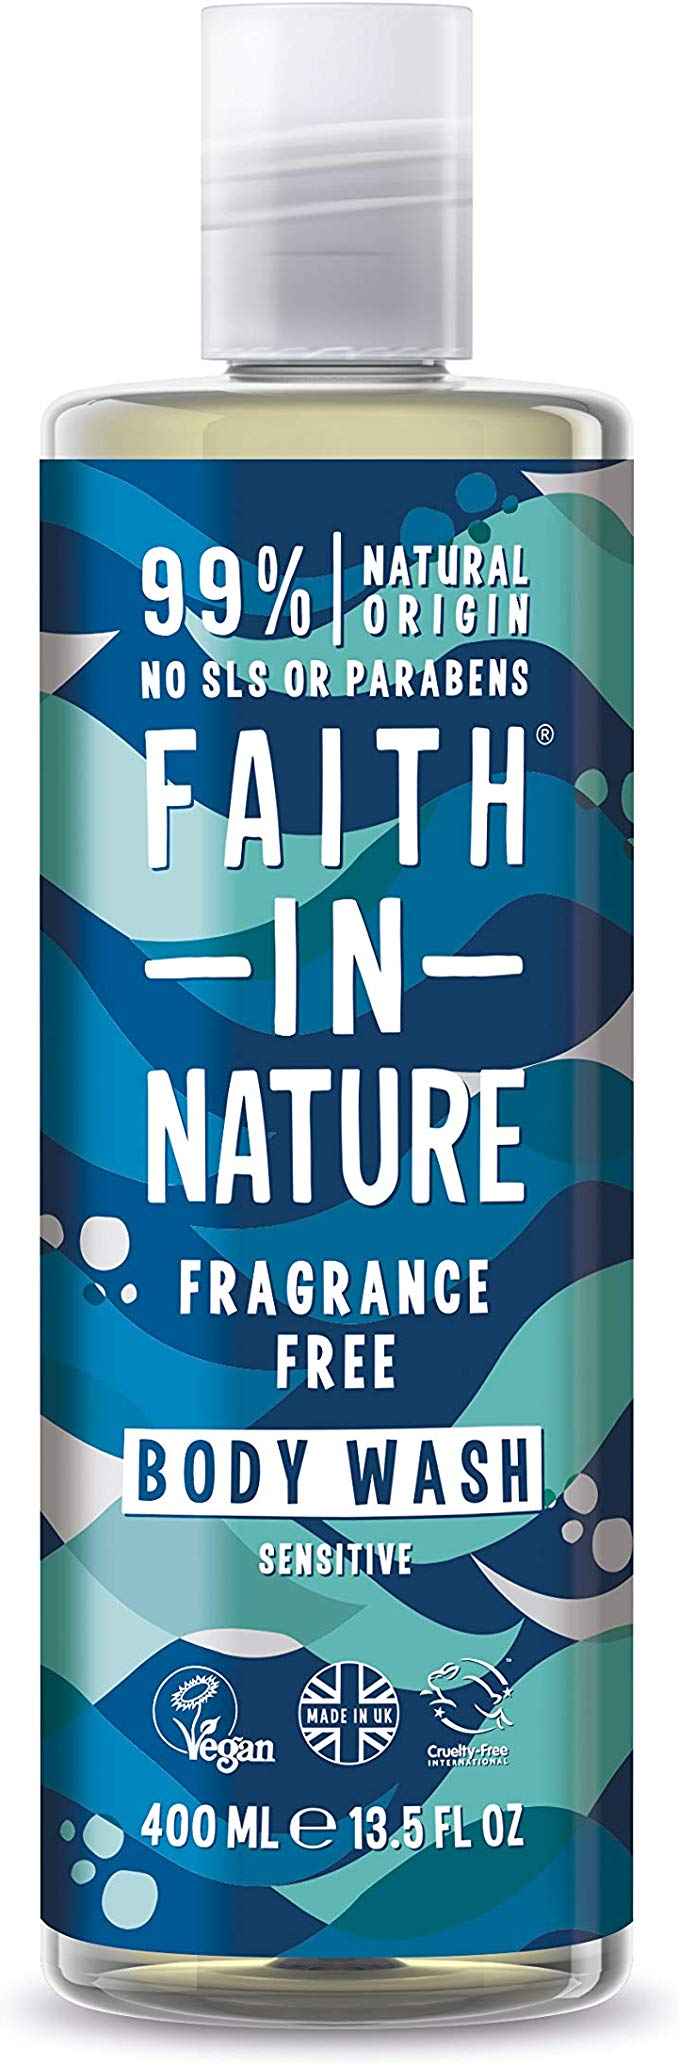 Faith in Nature Fragrance Free Shower Gel 100ml